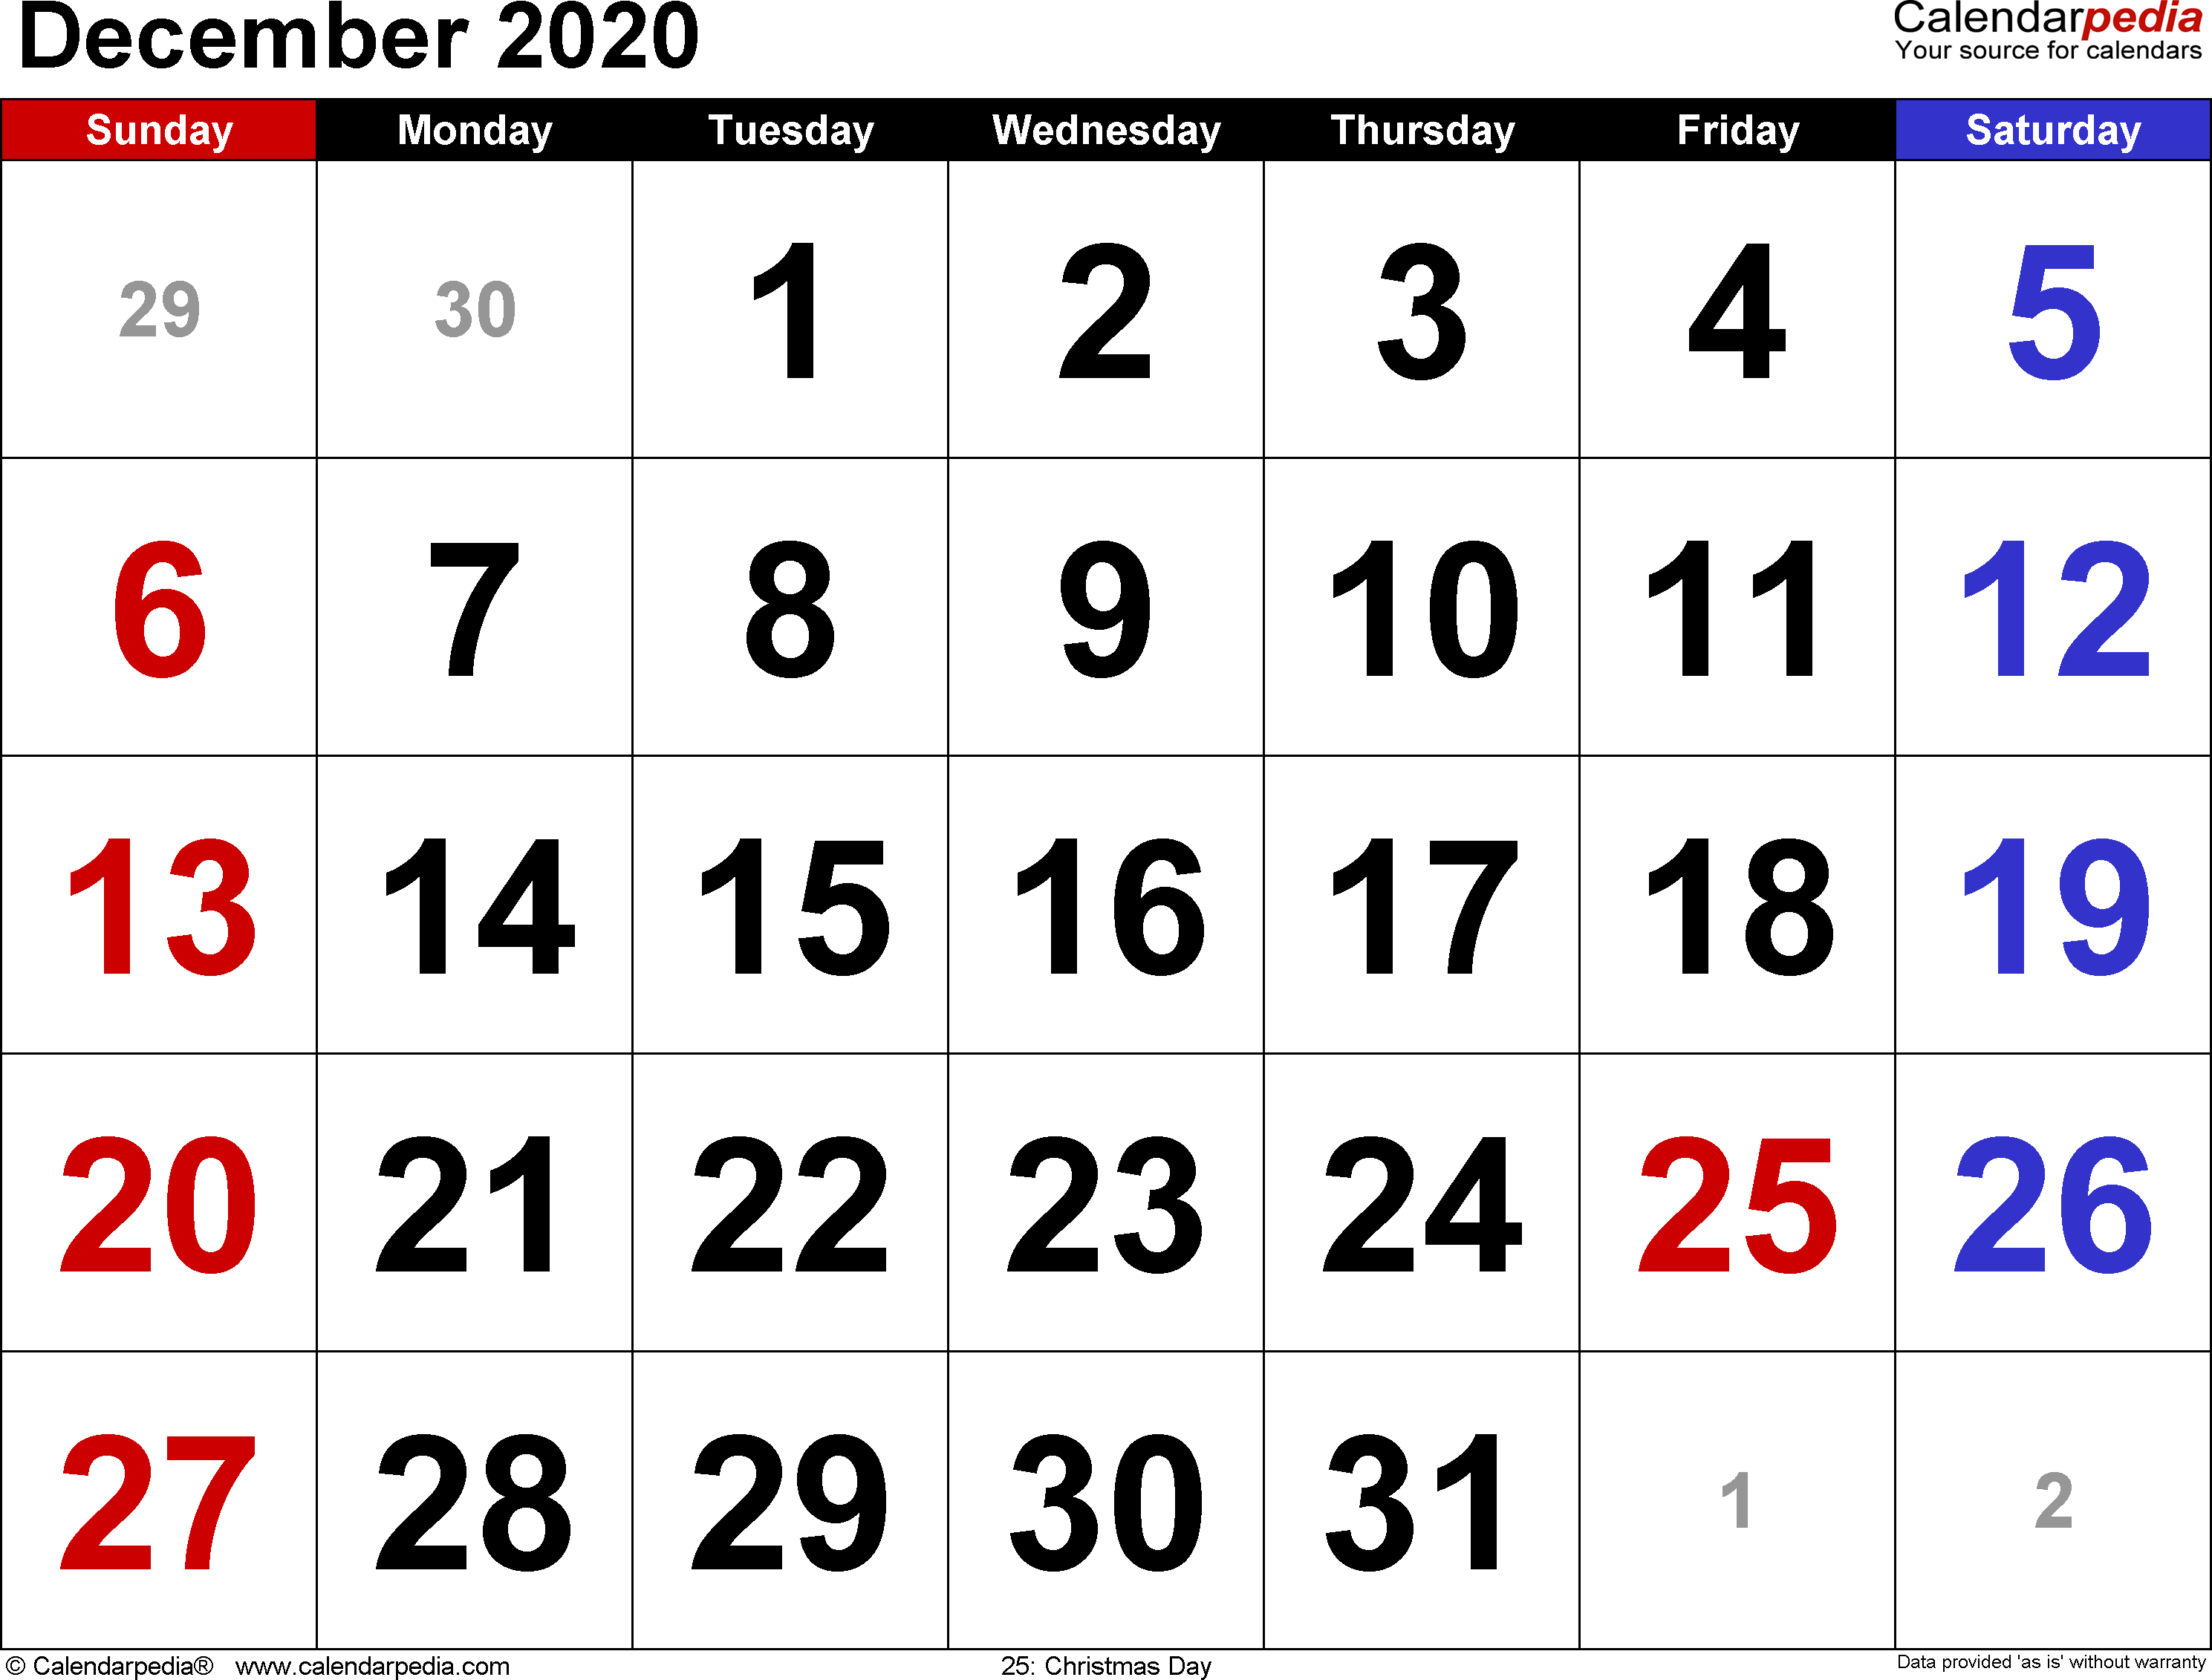 Calendar For Dec 2020 December 2020 Calendars for Word, Excel & PDF